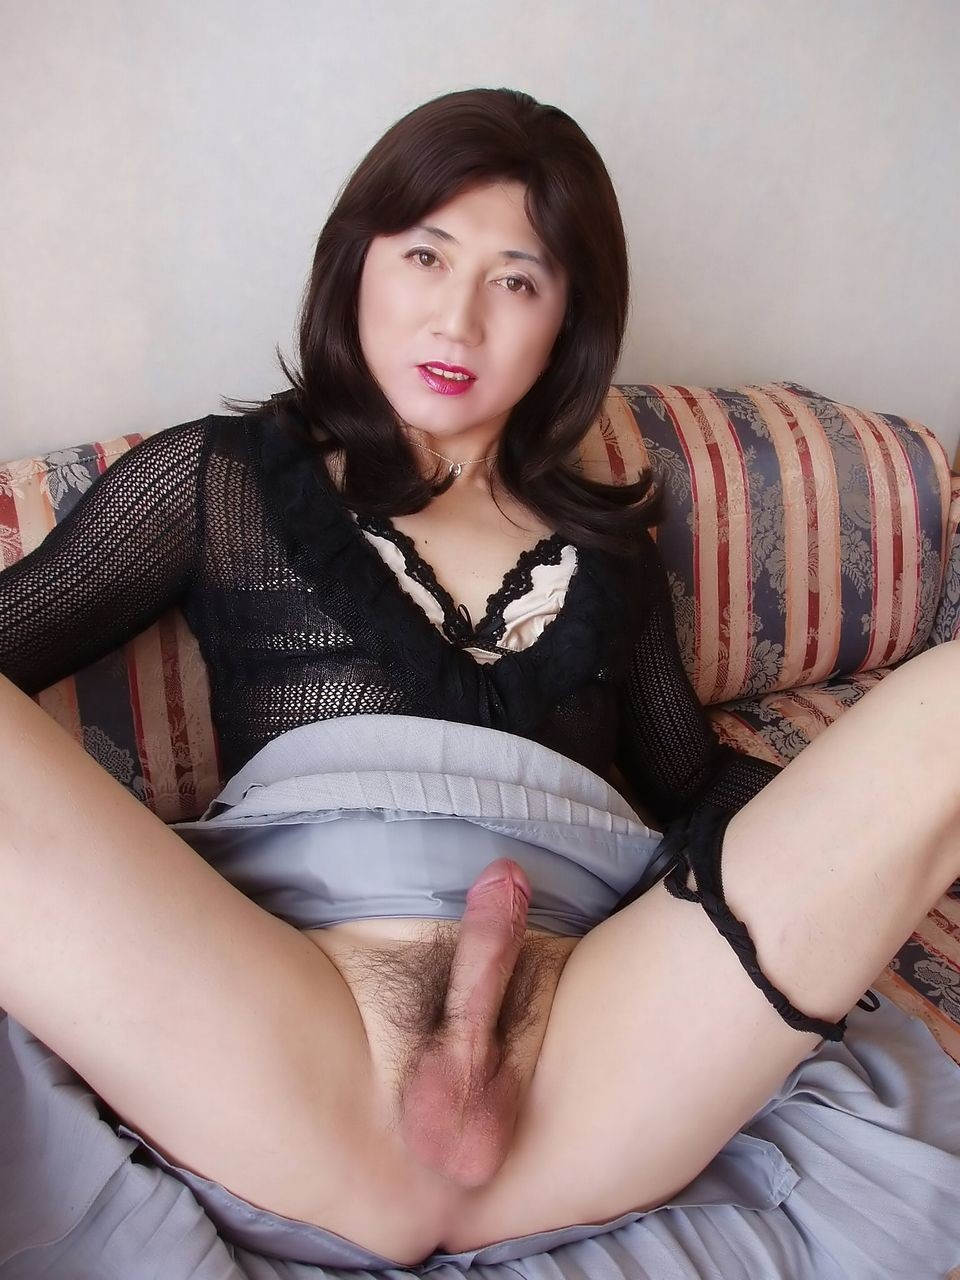 Asian crossdresser videos